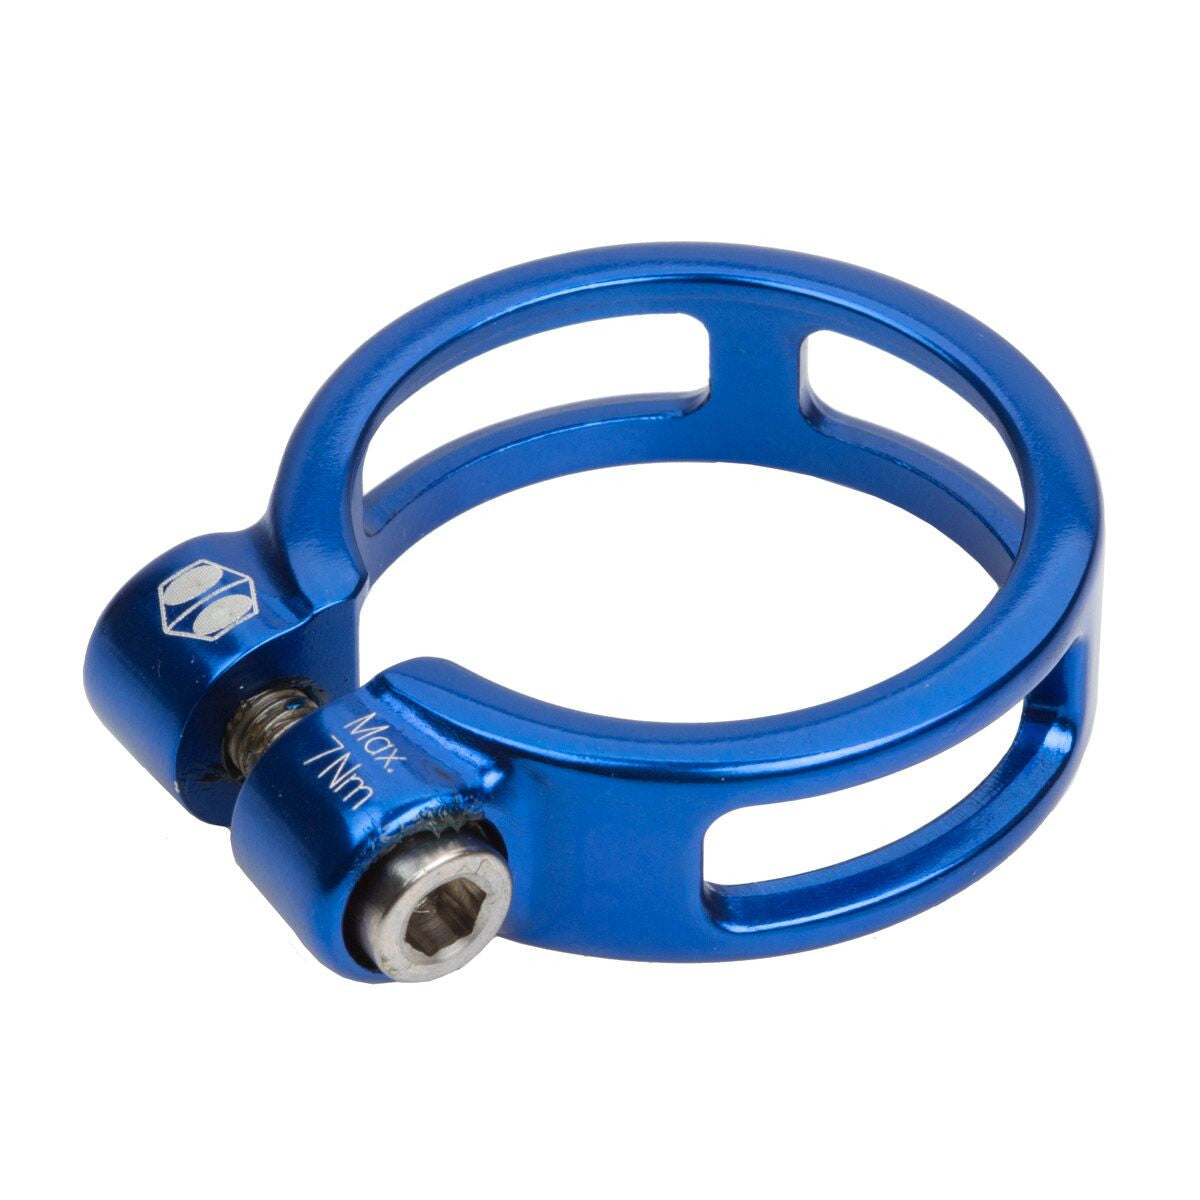 BOX HELIX FIXED SEAT CLAMP 31.8 - CLEARANCE SALE